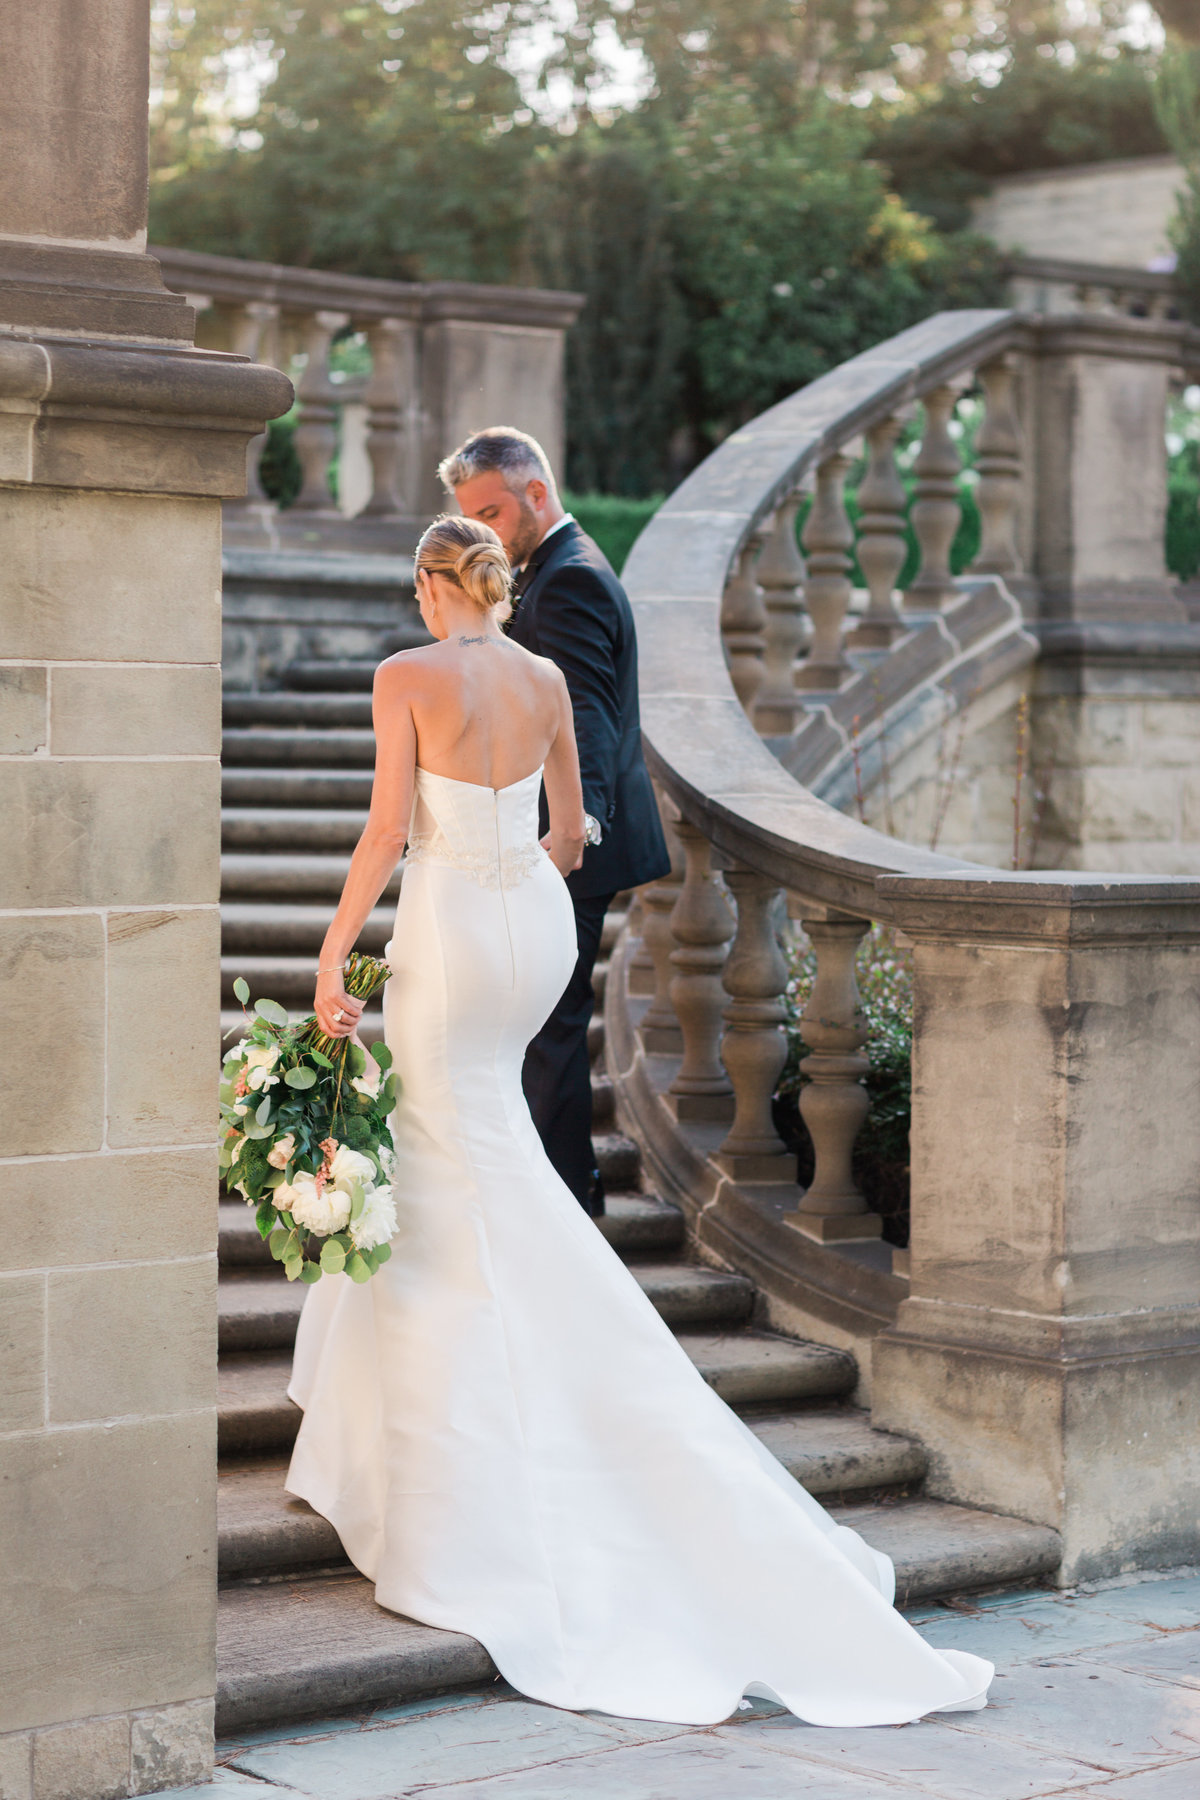 Greystone_Mansion_Intimate_Black_Tie_Wedding_Valorie_Darling_Photography - 138 of 206